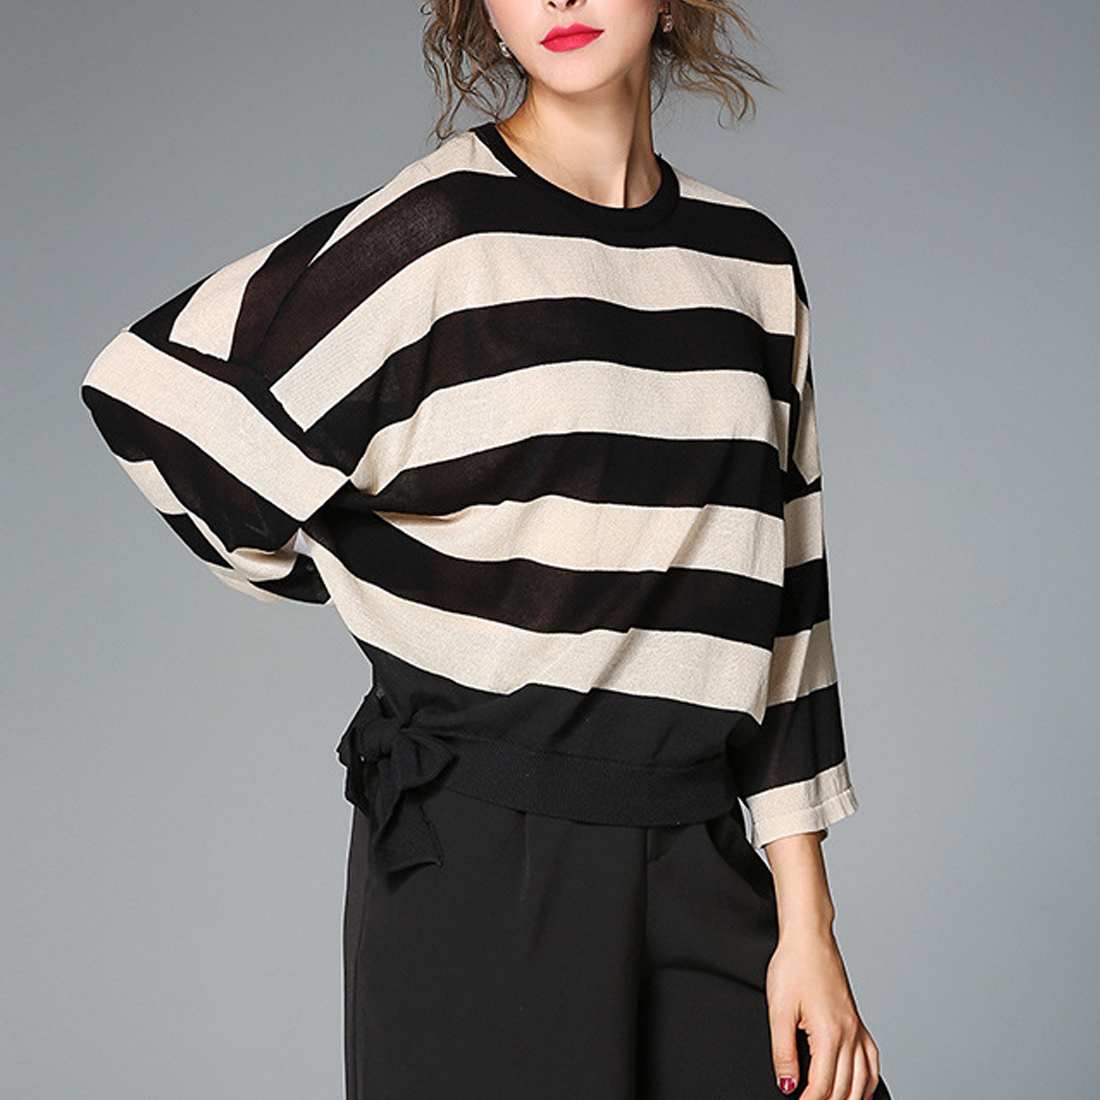 Women black white striped knitted sweaters bow design long sleeve slim pullover female autumn casual tops Knitted Sweater